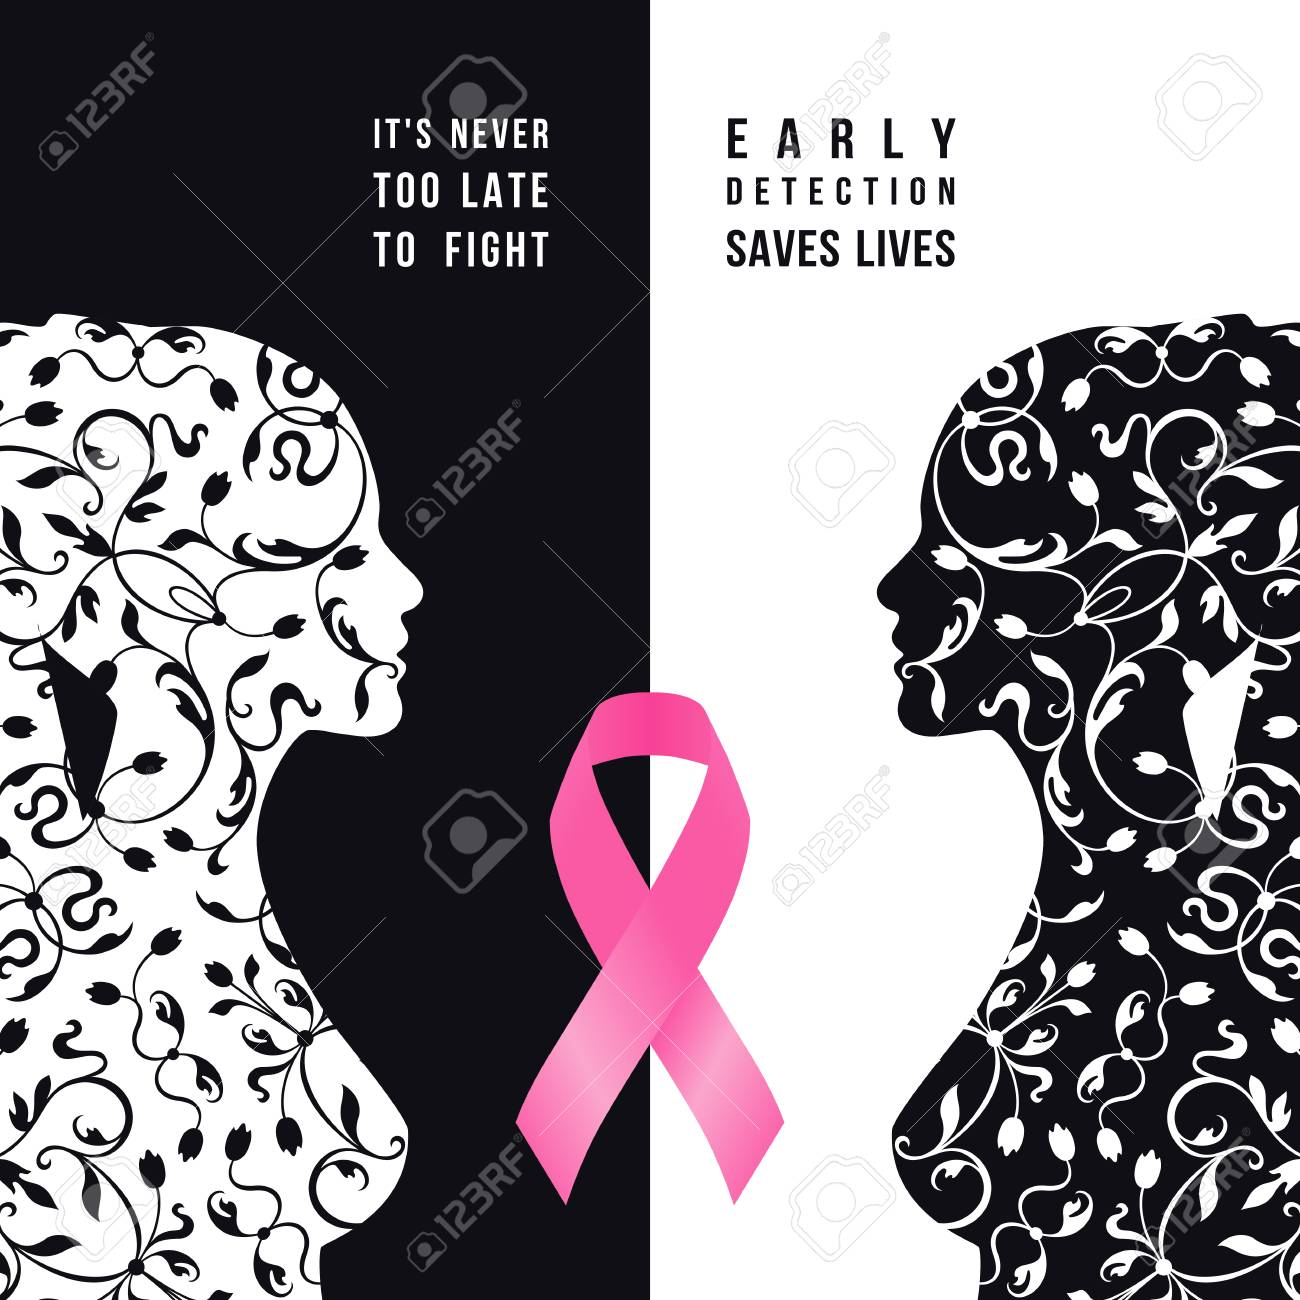 Breast Cancer Awareness Month White And Black Women Silhouette Royalty Free Cliparts Vectors And Stock Illustration Image 66021043